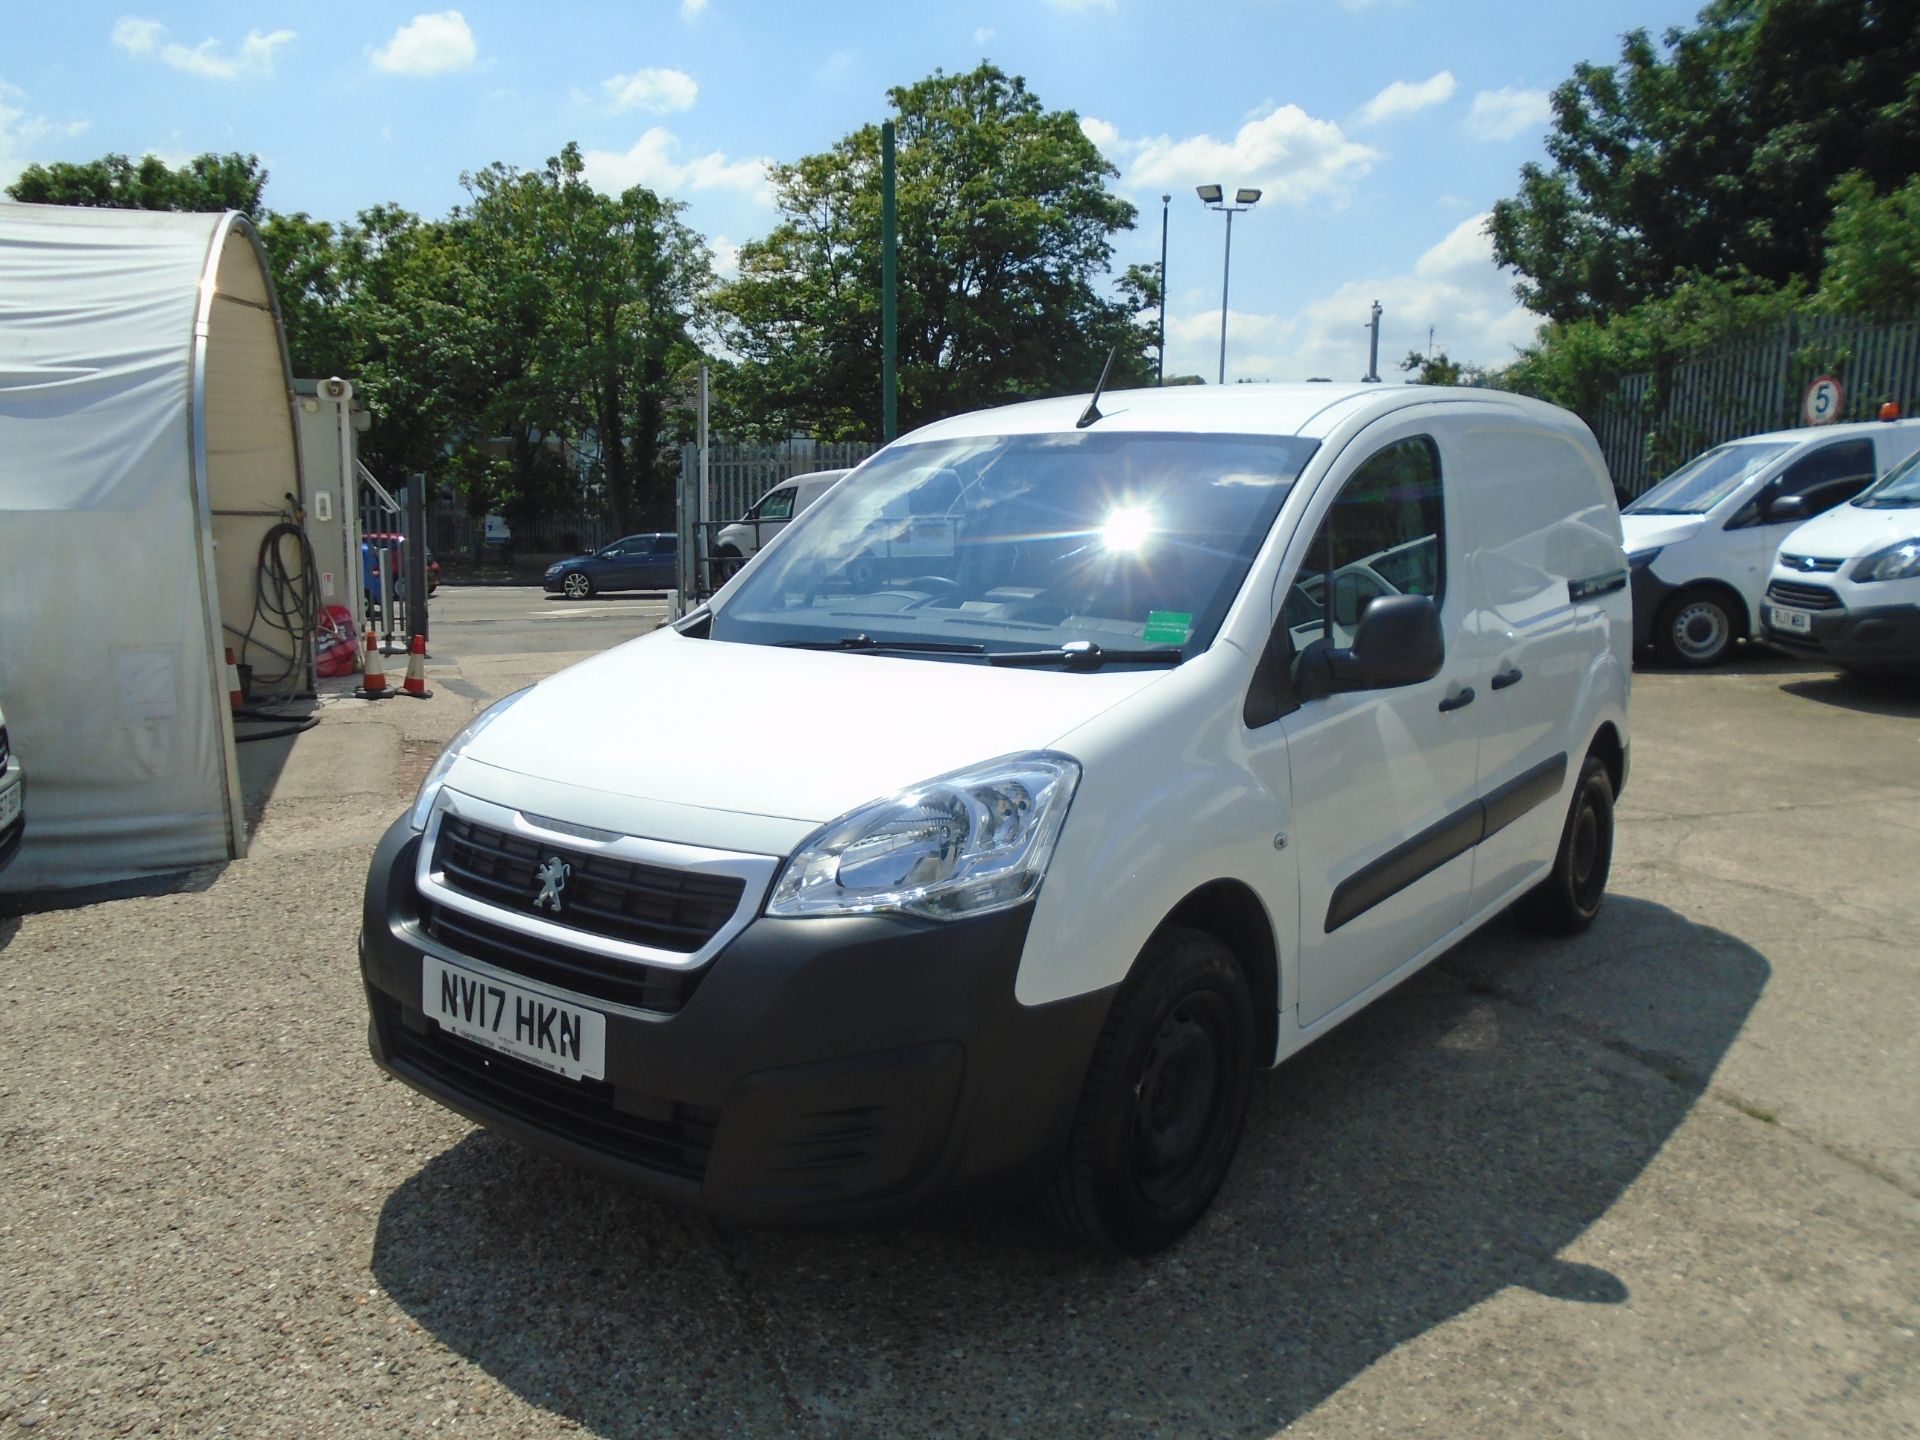 2017 Peugeot Partner 850 1.6 Bluehdi 100 Professional Van [Non Ss] *SPEED LIMITED 70MPH* (NV17HKN) Image 3